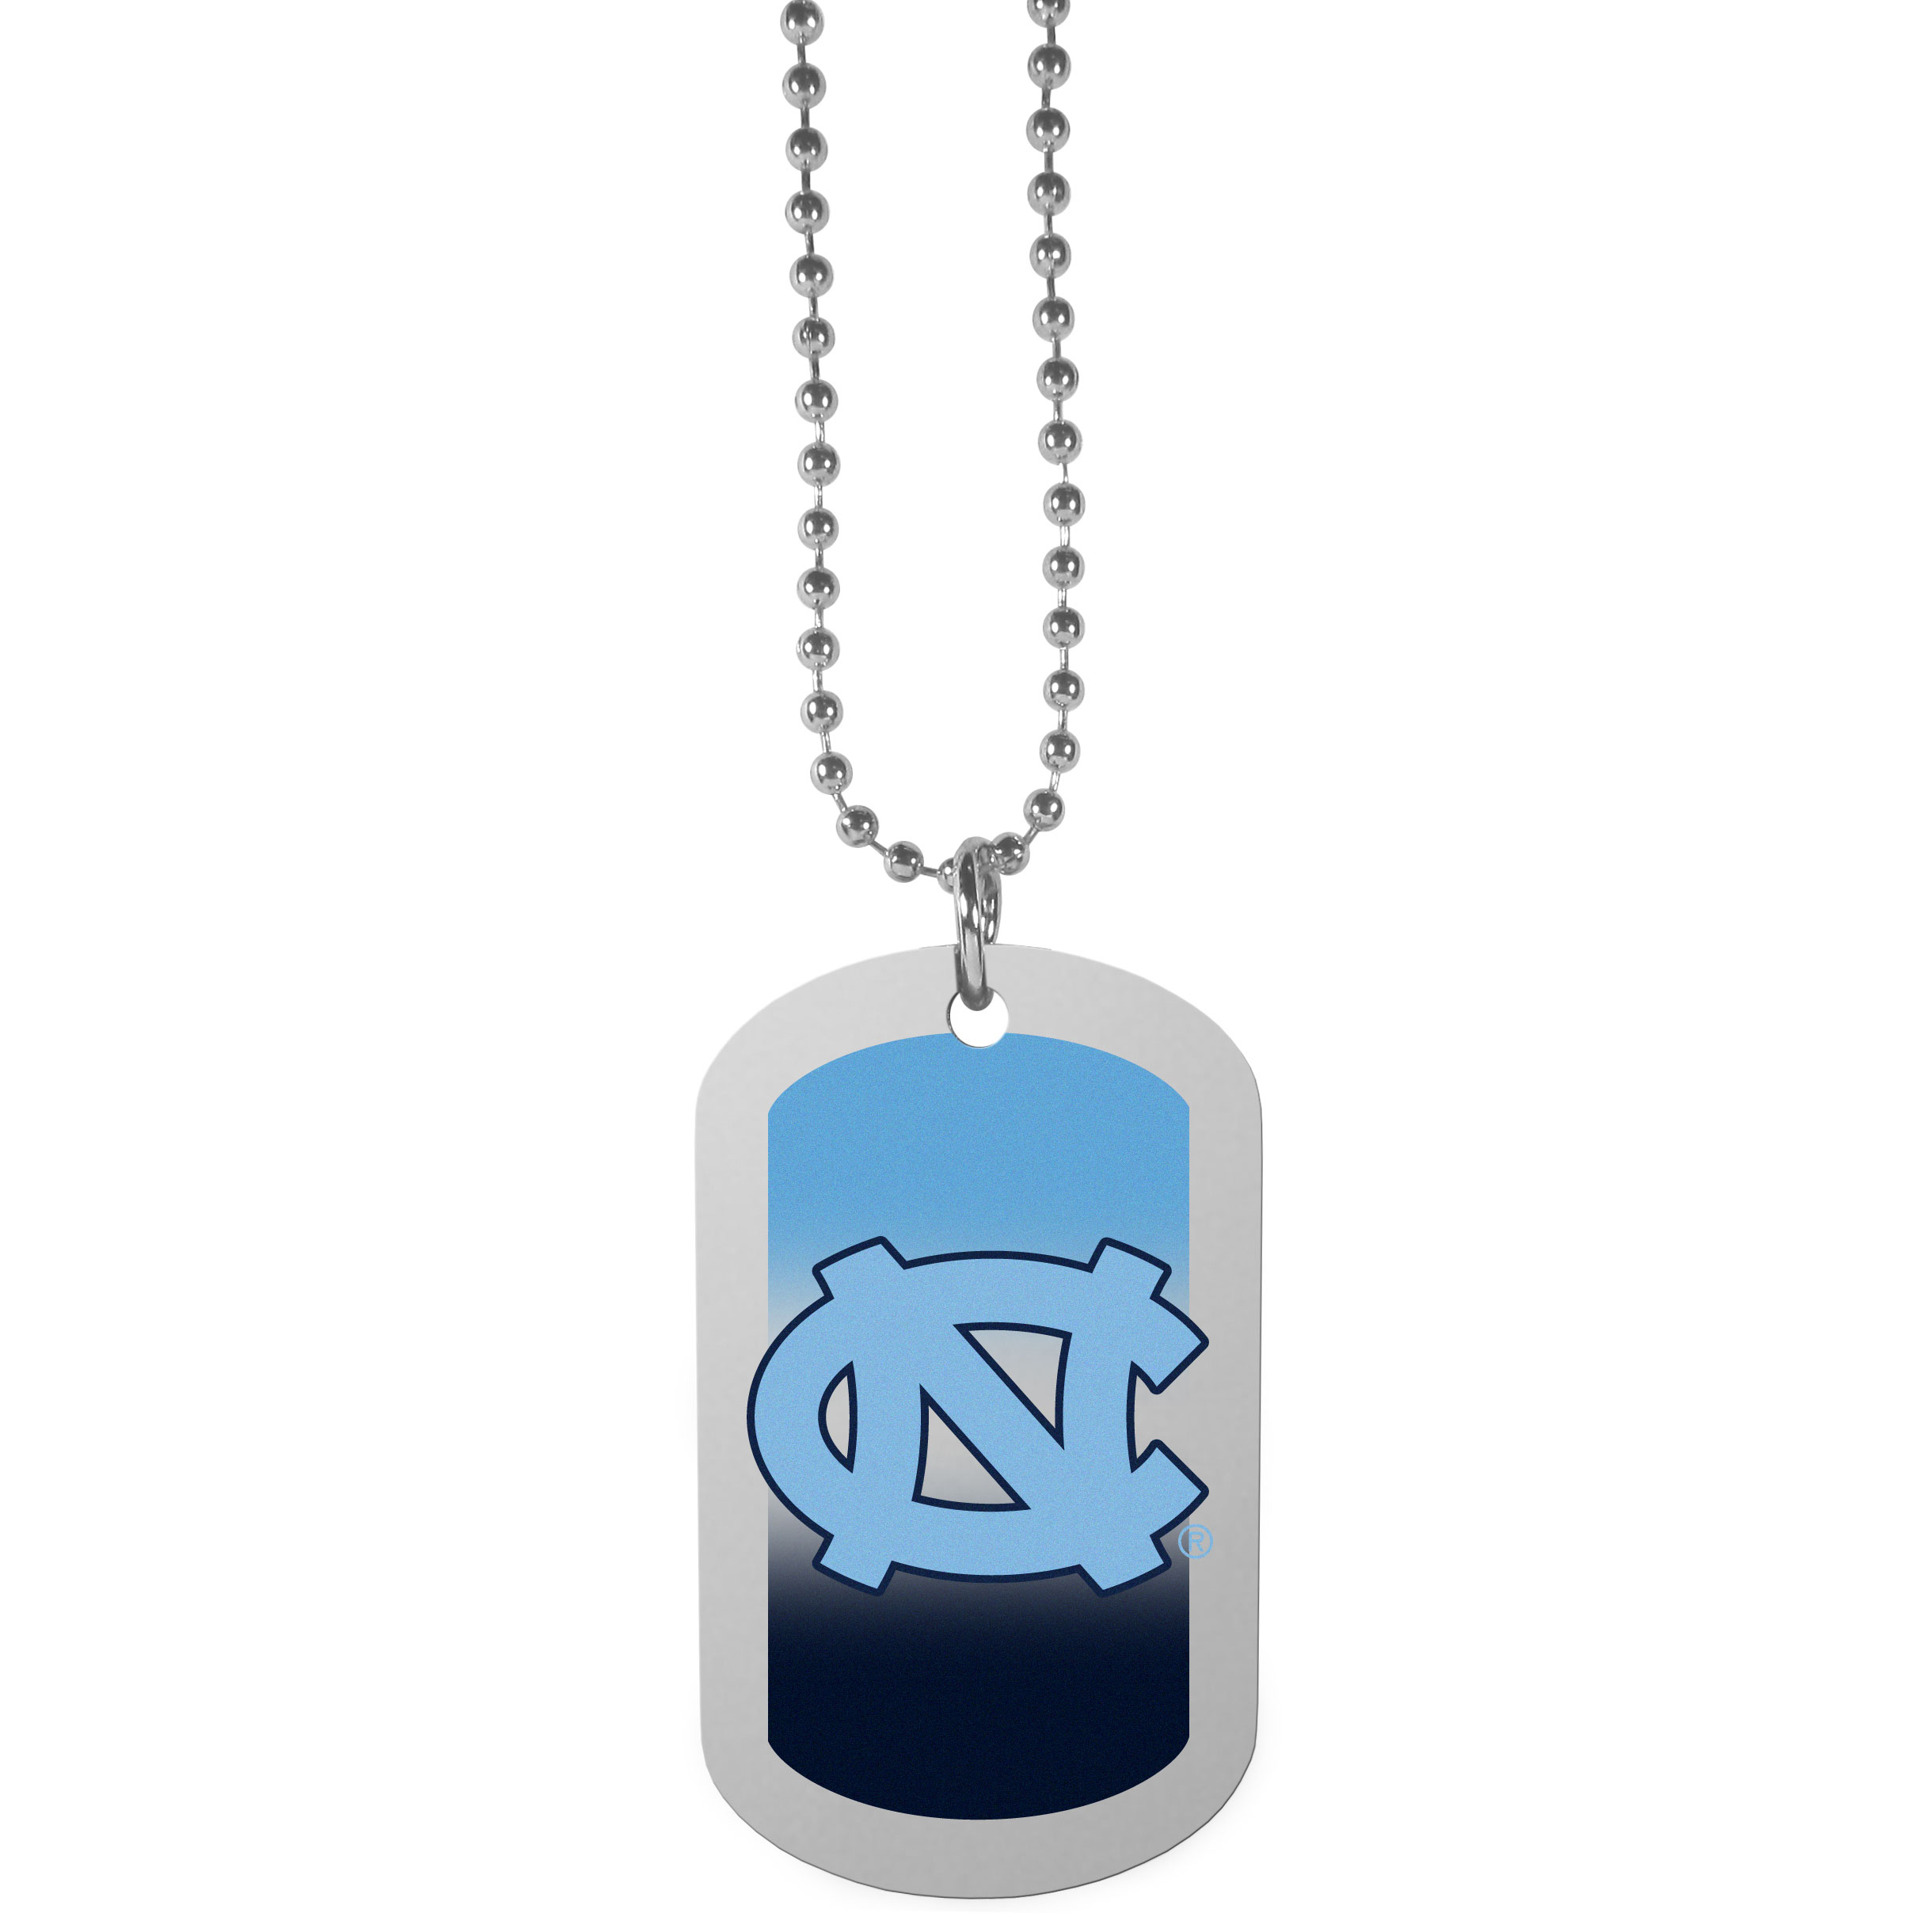 N. Carolina Tar Heels Team Tag Necklace - Dog tag necklaces are a fashion statement that is here to stay. The sporty version of the classic tag features a gradient print in team colors featuring a full color team logo over a high polish tag to create a bold and sporty look. The tag comes on a 26 inch ball chain with a ball and joint clasp. Any N. Carolina Tar Heels would be proud to wear this attractive fashion accessory.